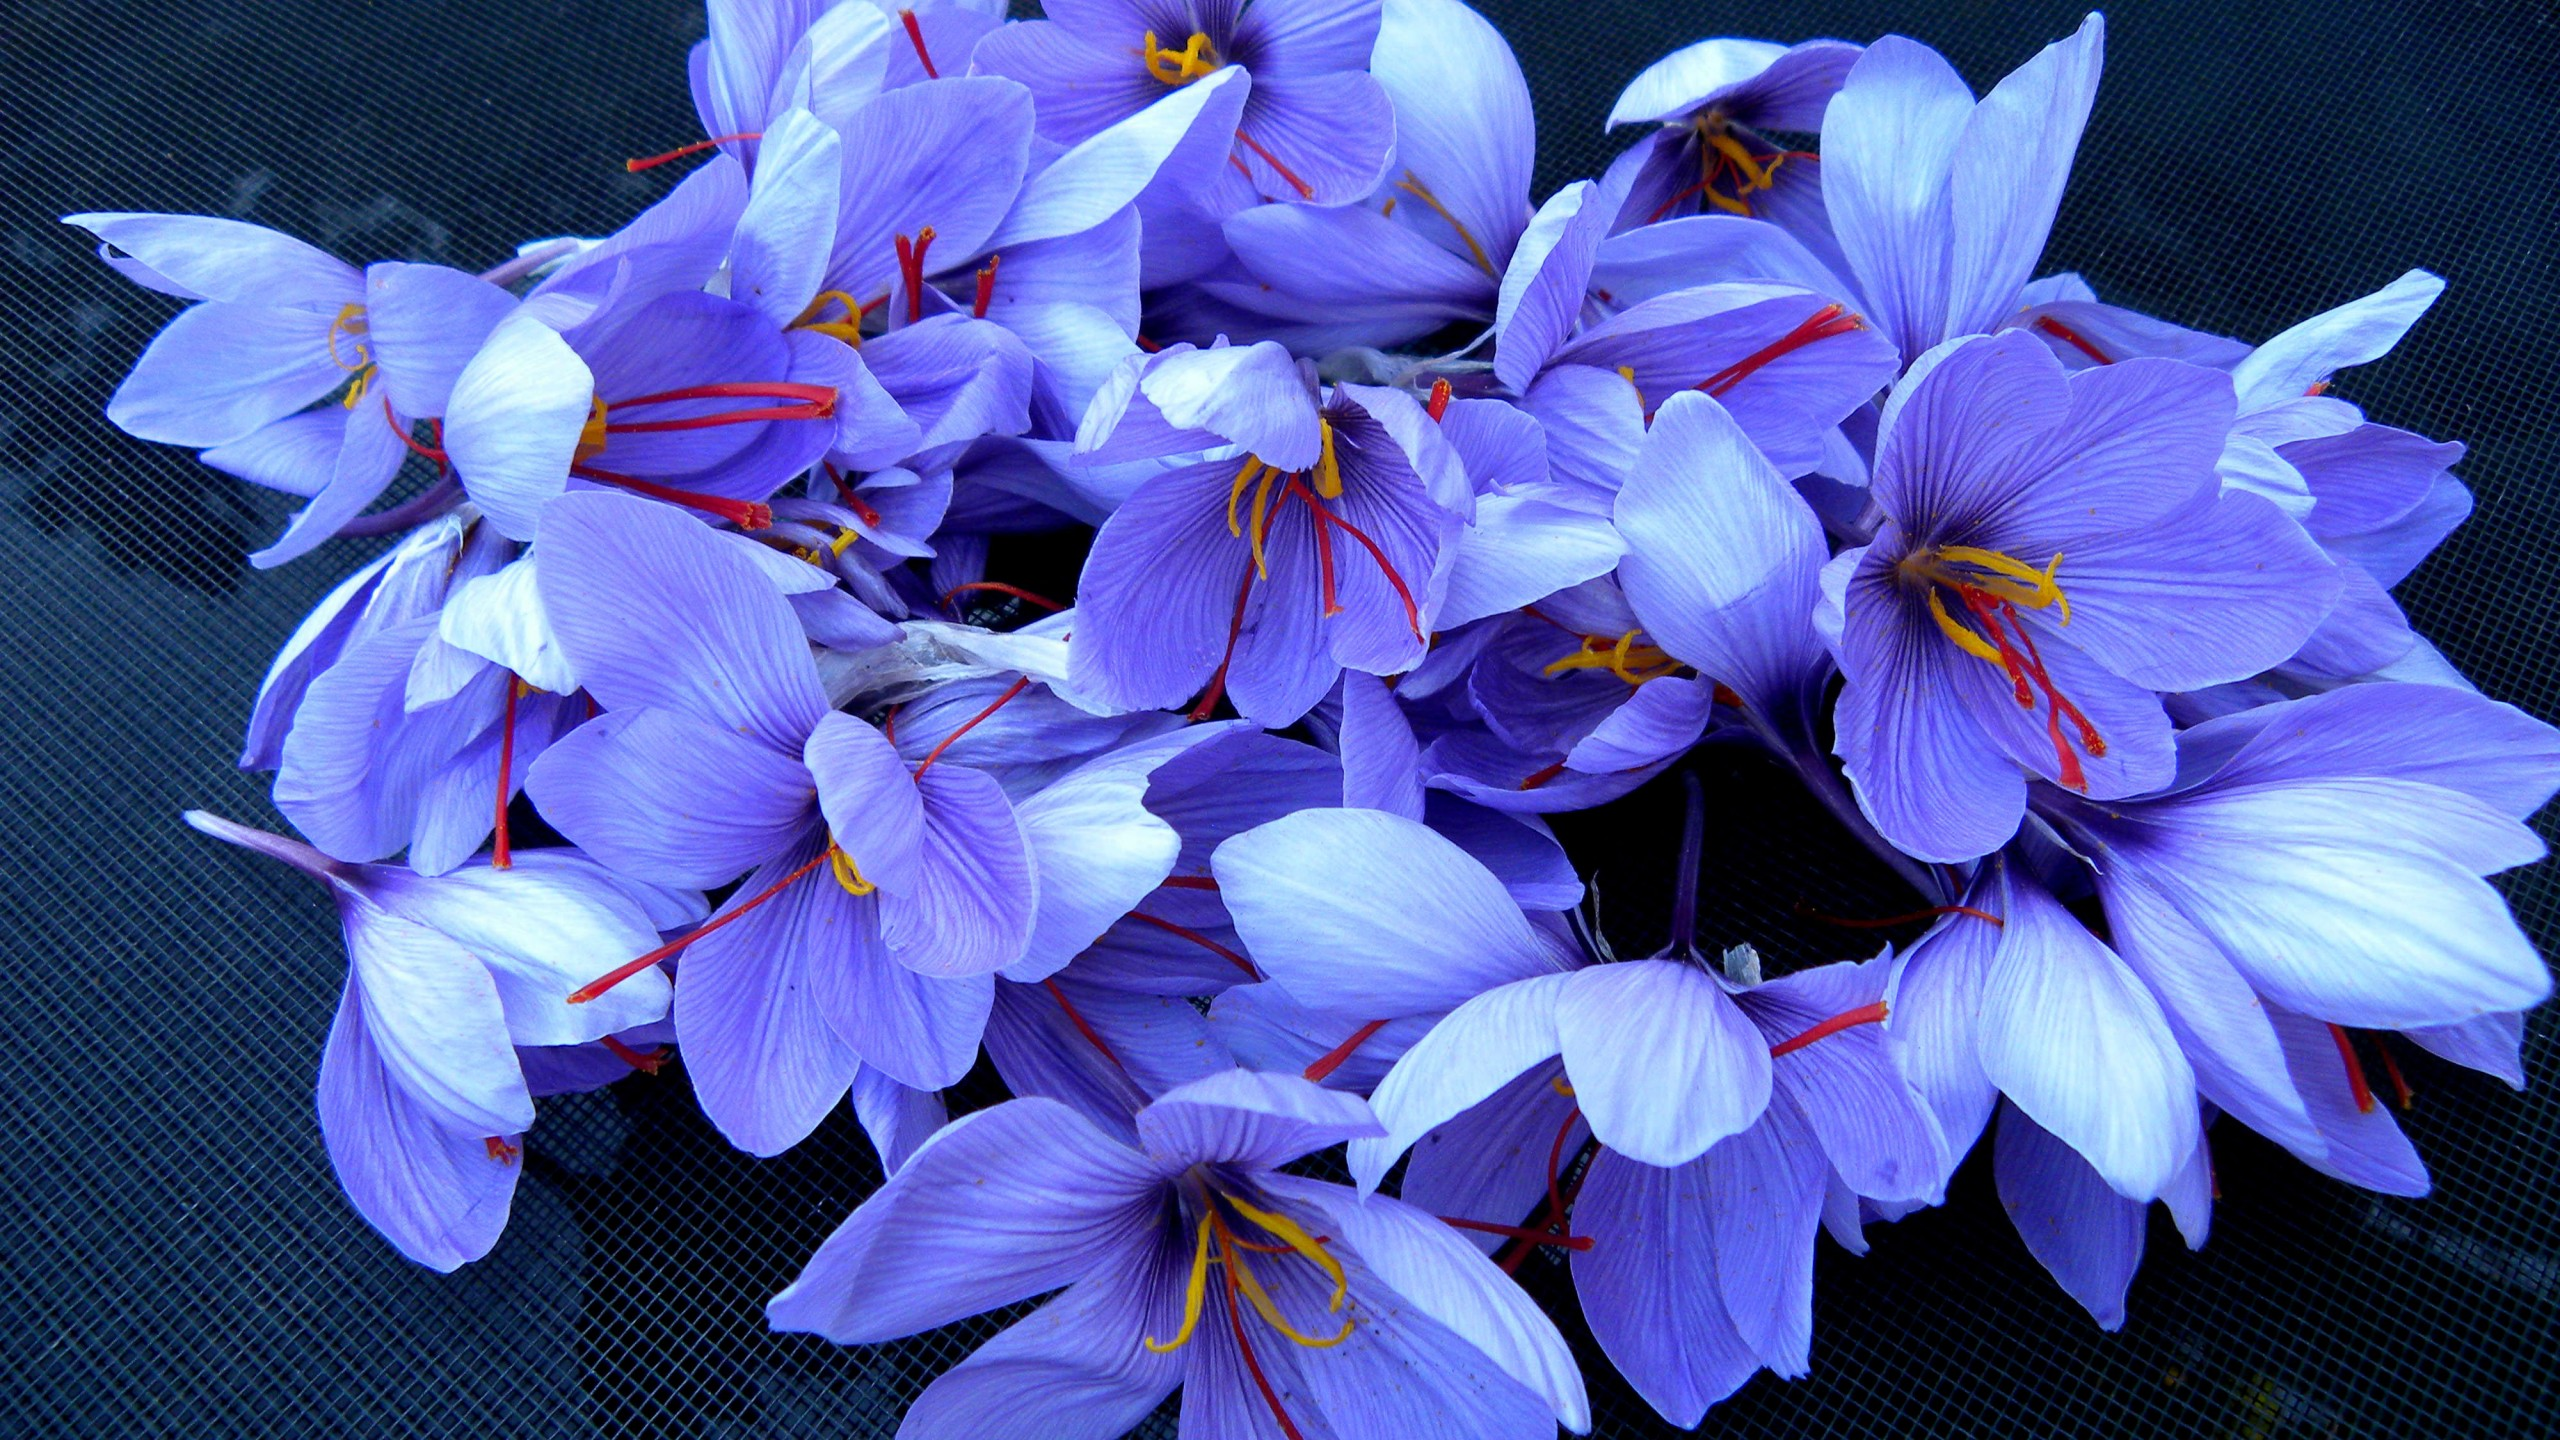 wallpaper saffron, 4k, hd wallpaper, flowers, spring, nature #427